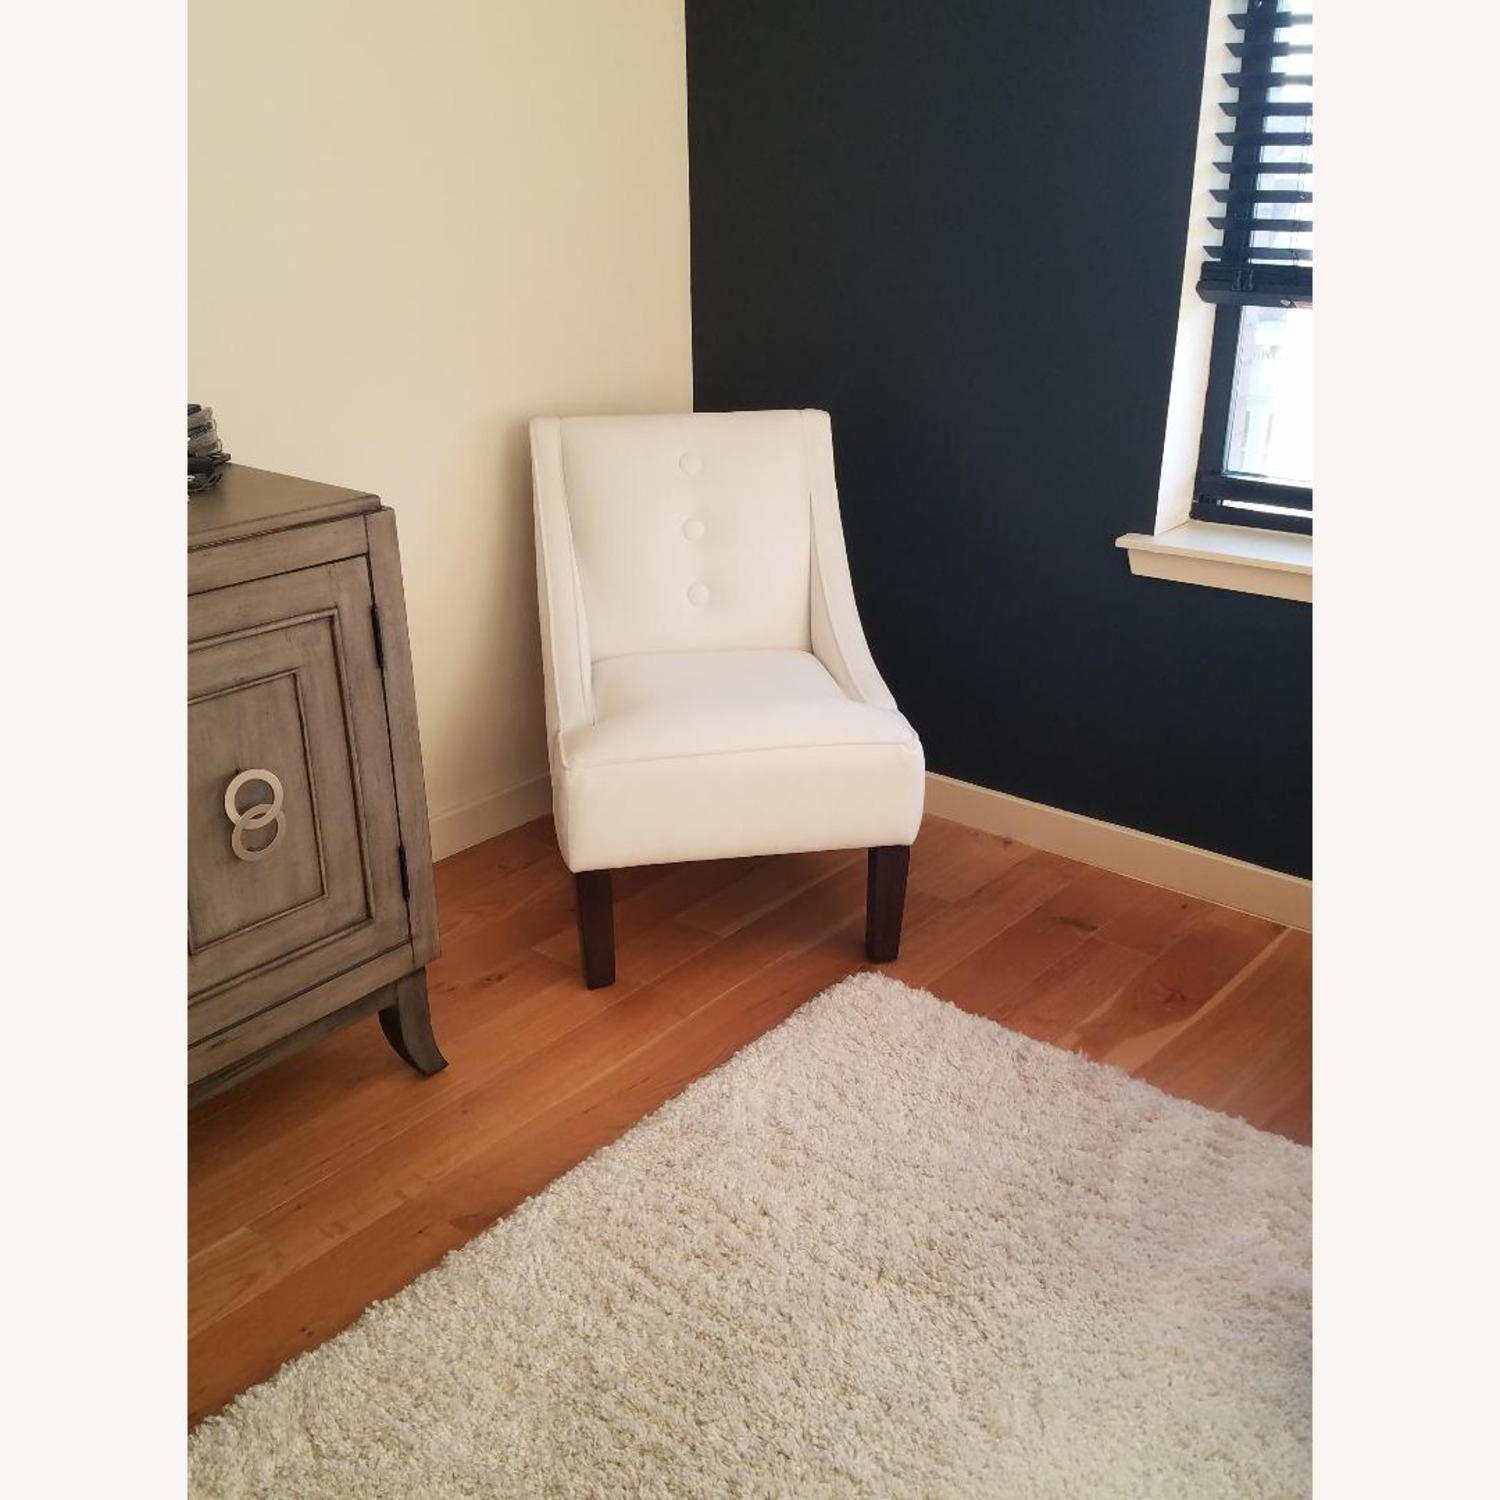 CISCO Brothers Sleek Accent Chair - image-2